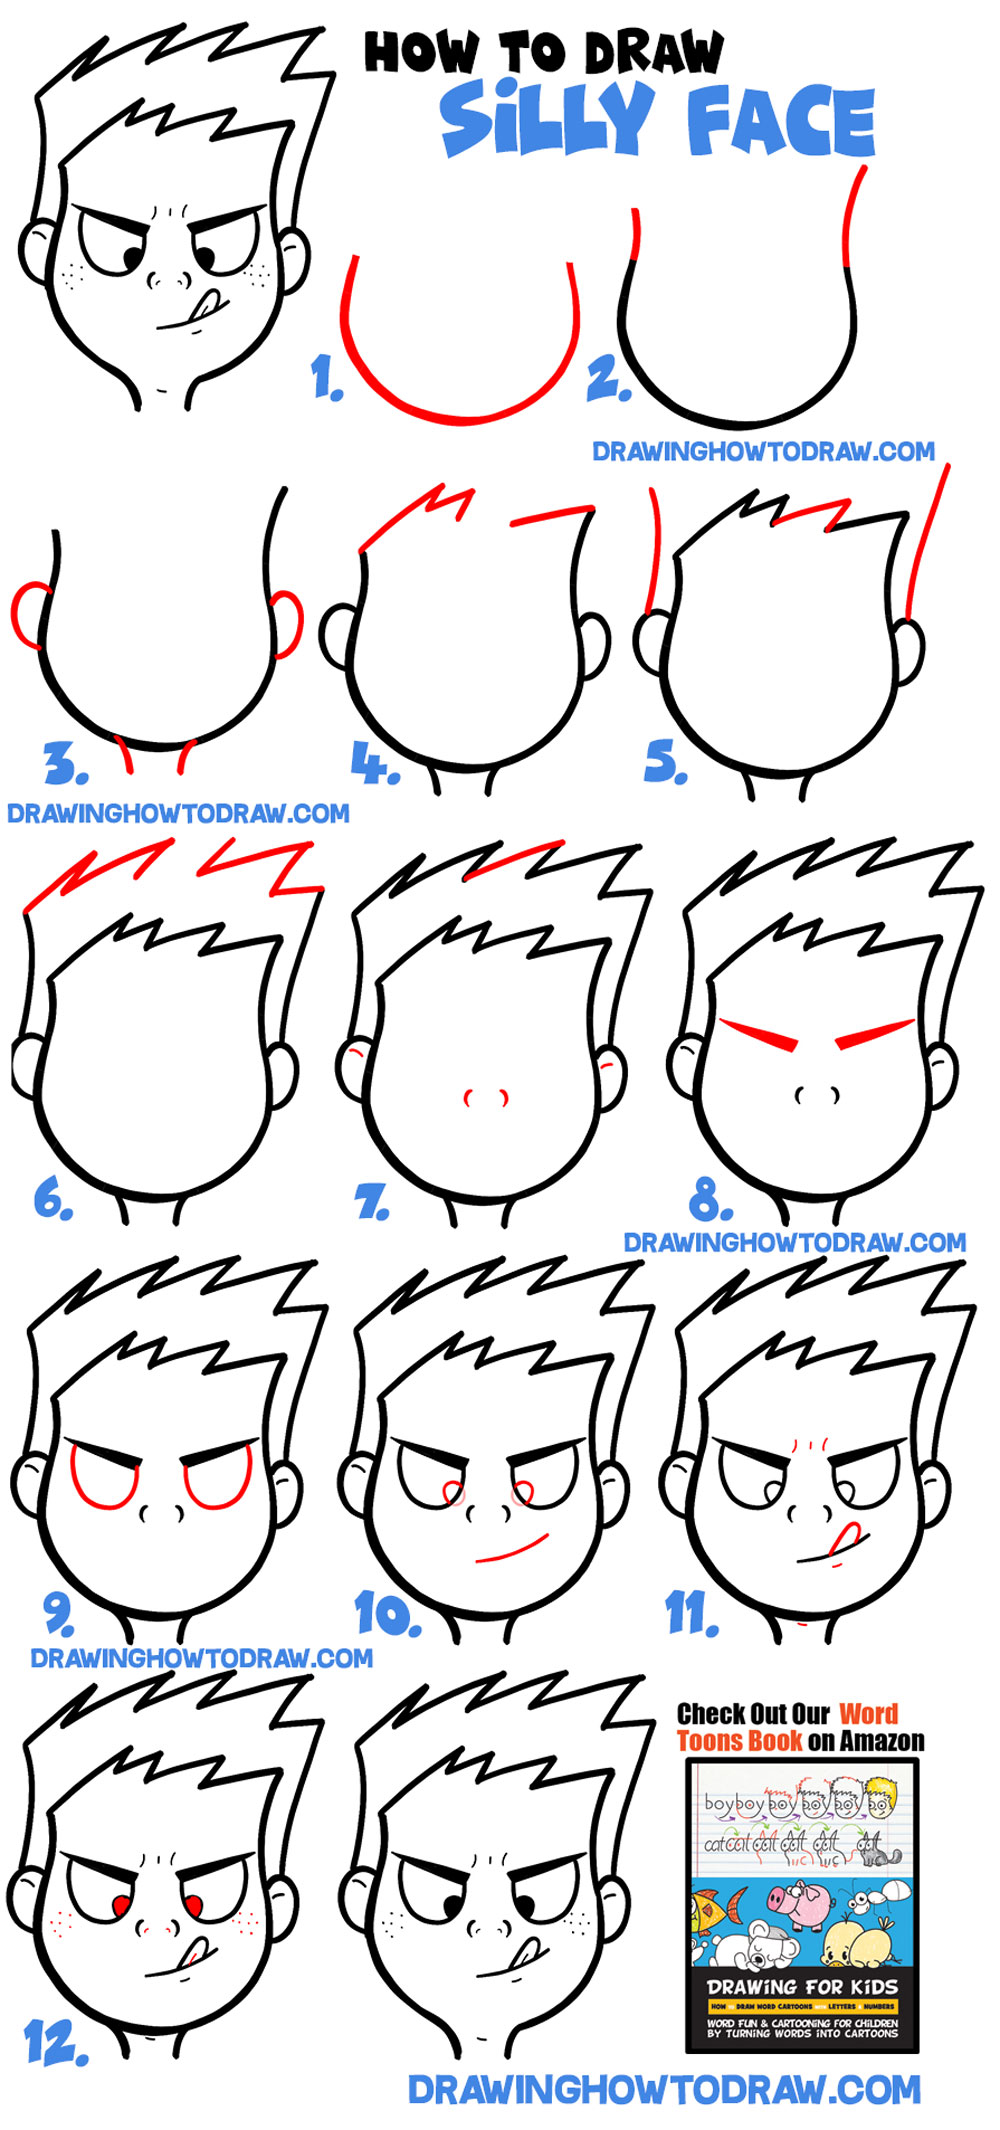 how to draw a silly face